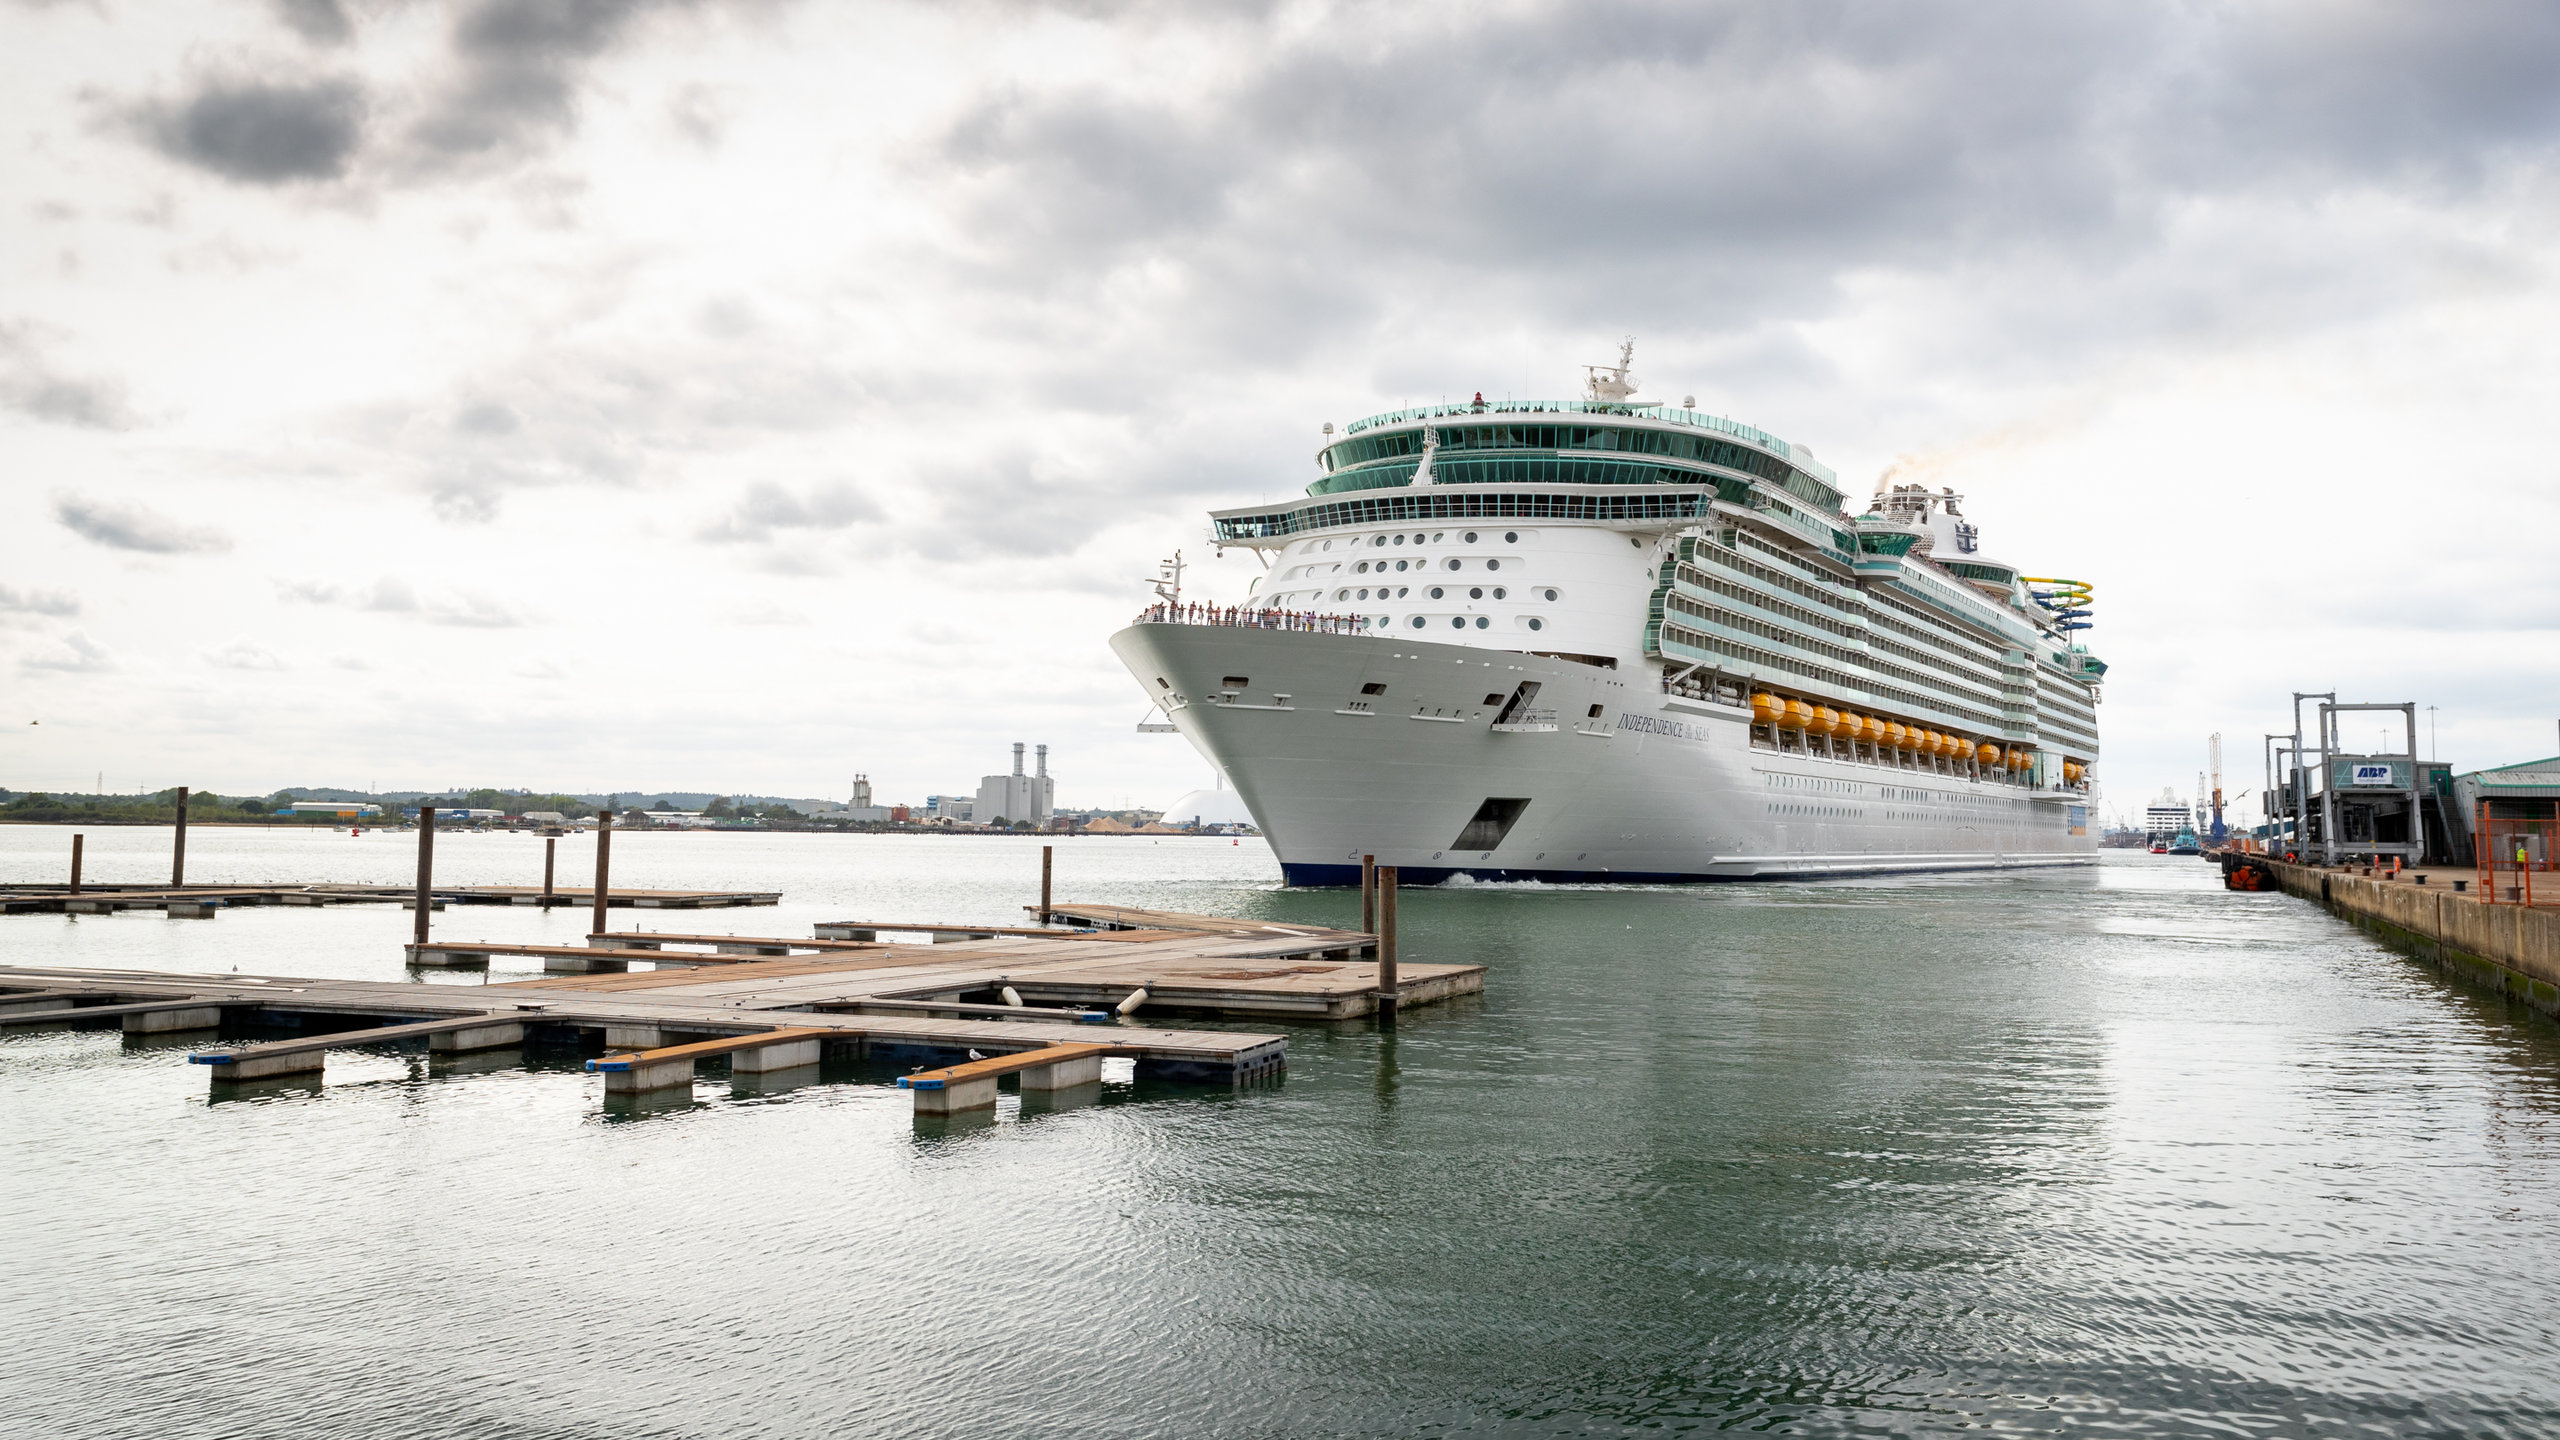 Top 10 Hotels Closest To Southampton Cruise Terminal Southampton